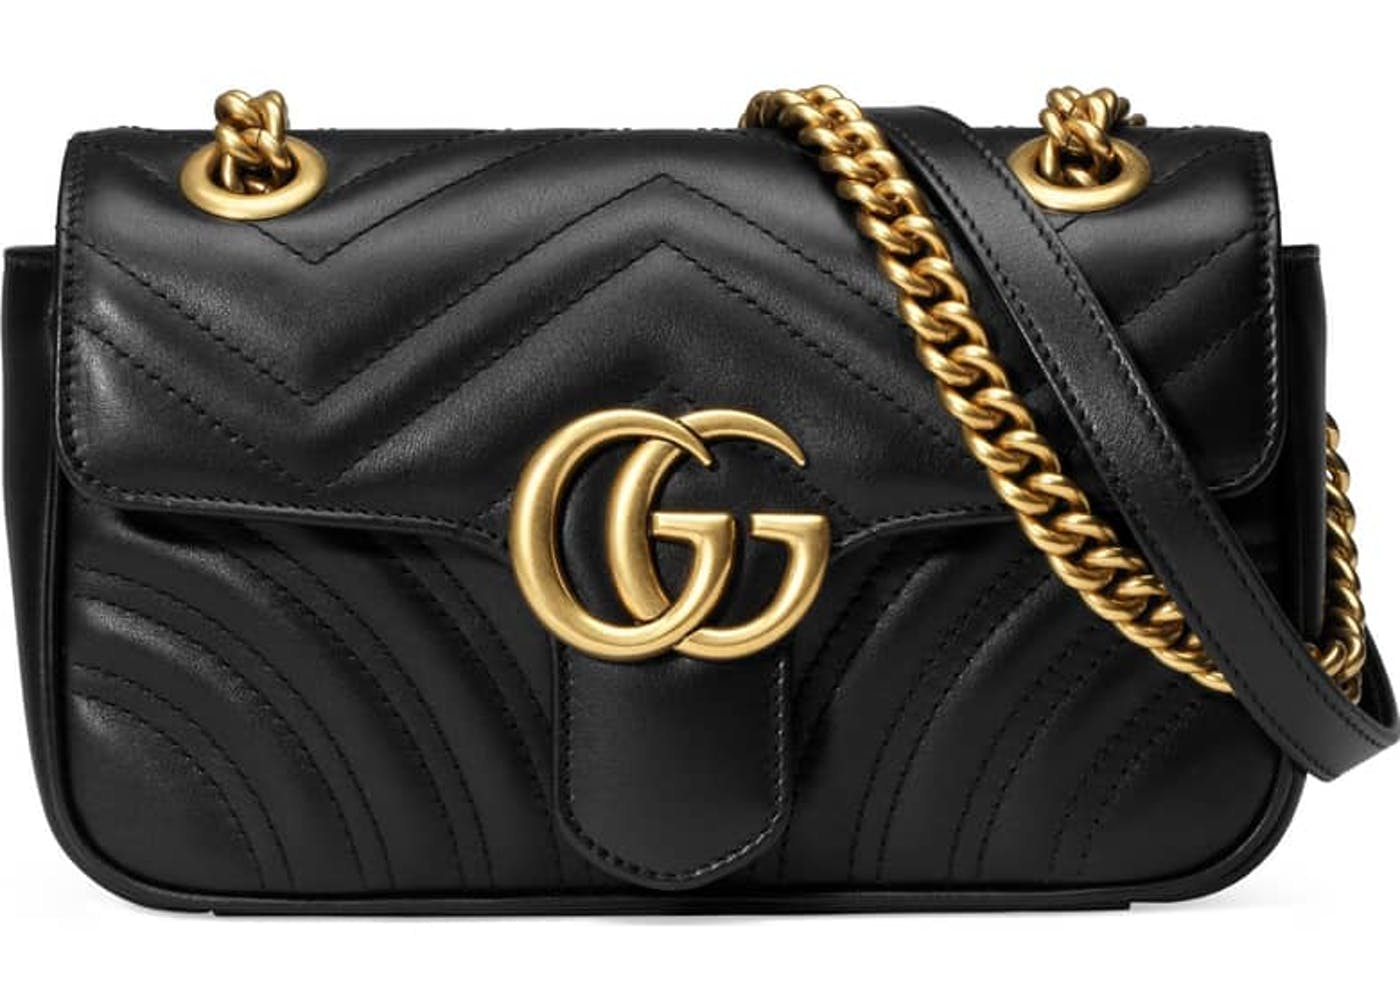 Gucci Marmont Mini Black